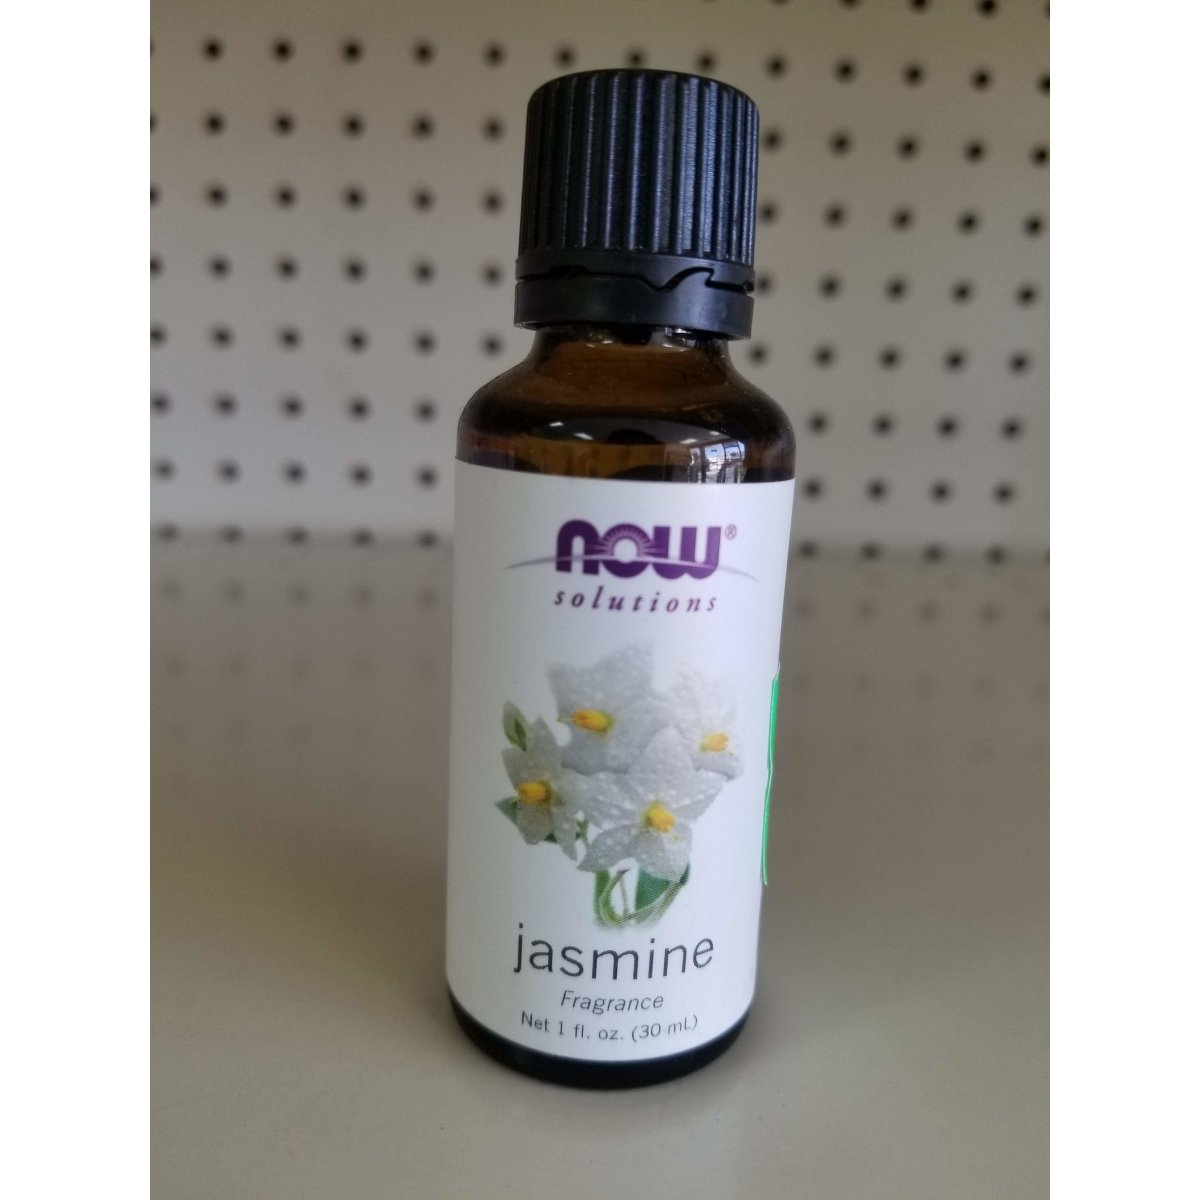 NOW Essential Oils Jasmine Fragrance, 1 fl oz